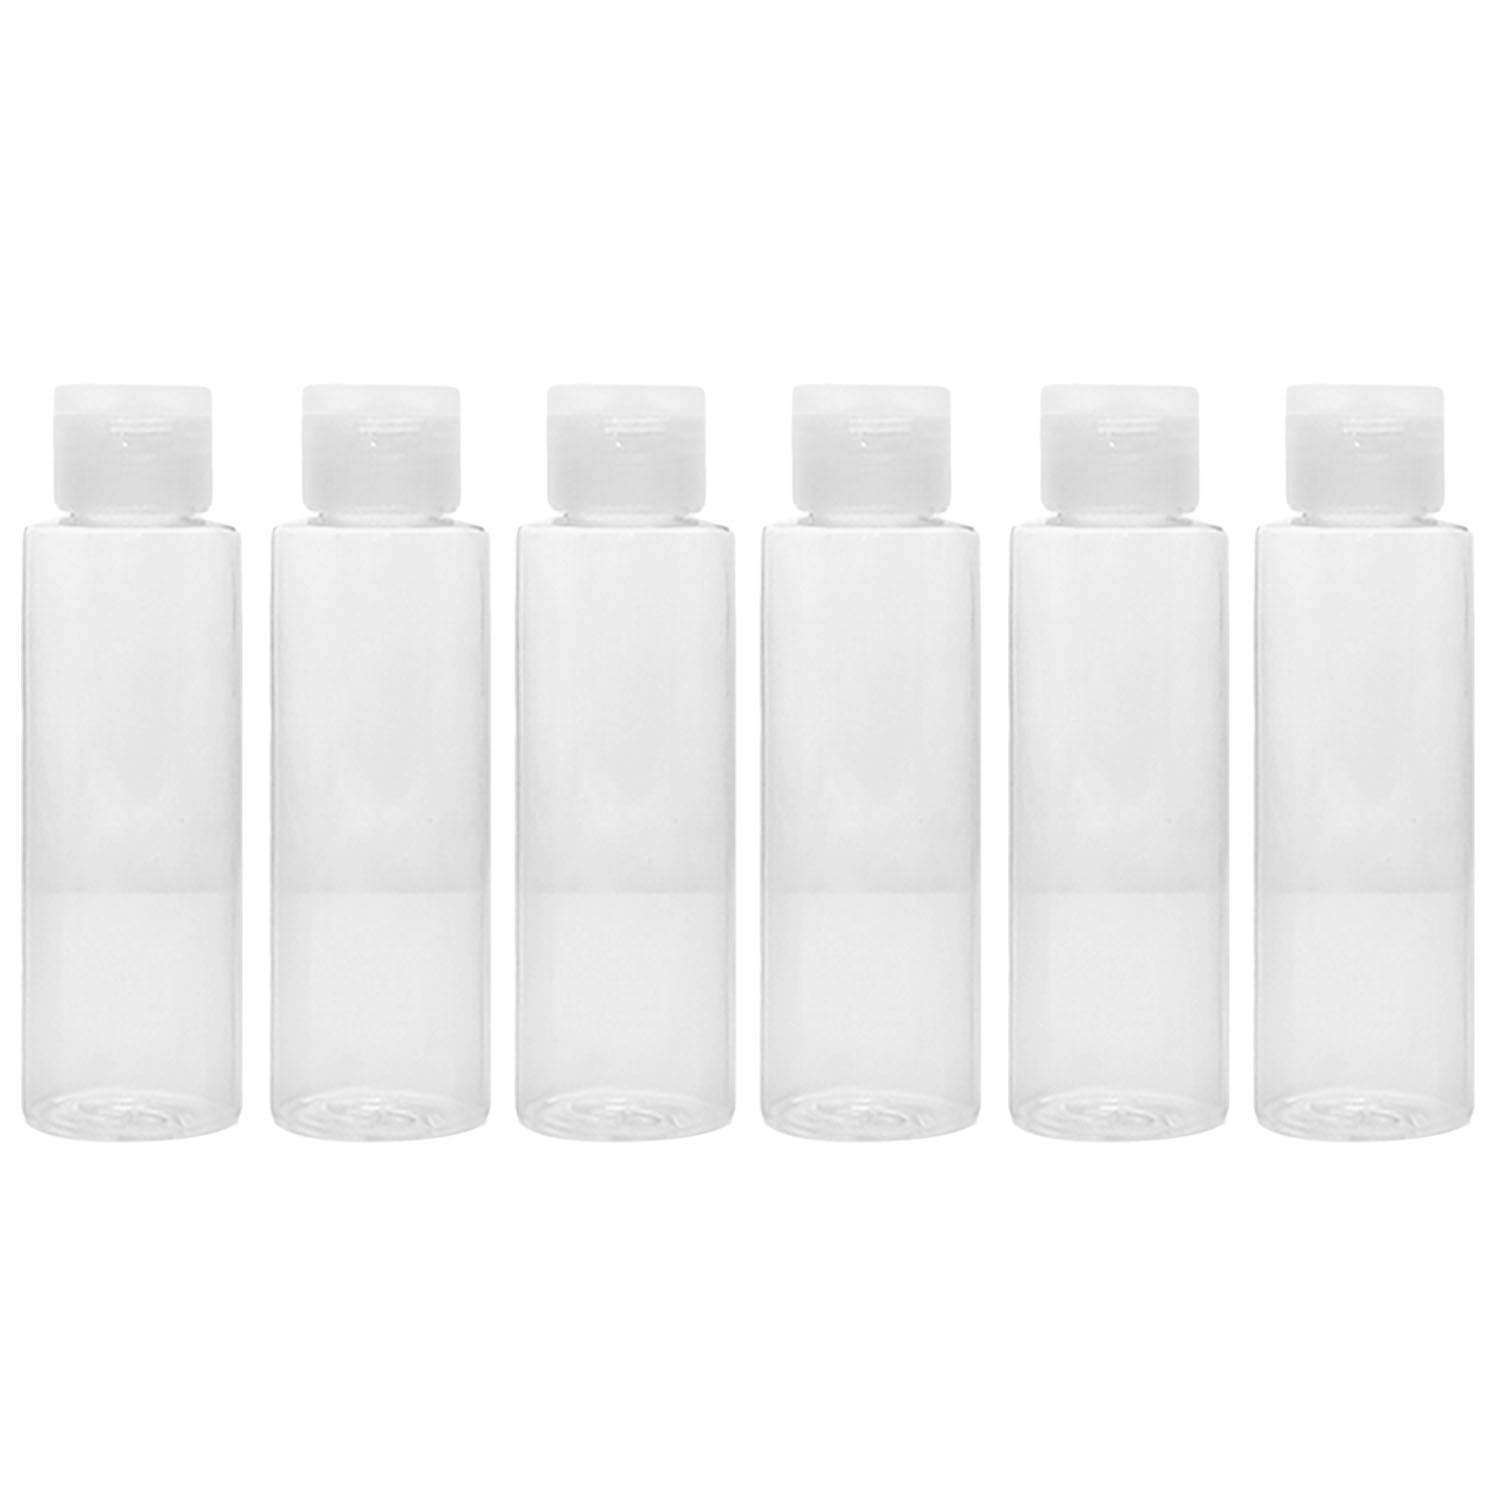 de5ebc07aec0 US $4.98 50% OFF 10 PCS 100ml Clear Plastic Air Flight Travel Bottles Set  Lotion Shower Gel Shampoo Container with 2 Small Funnel-in Refillable ...